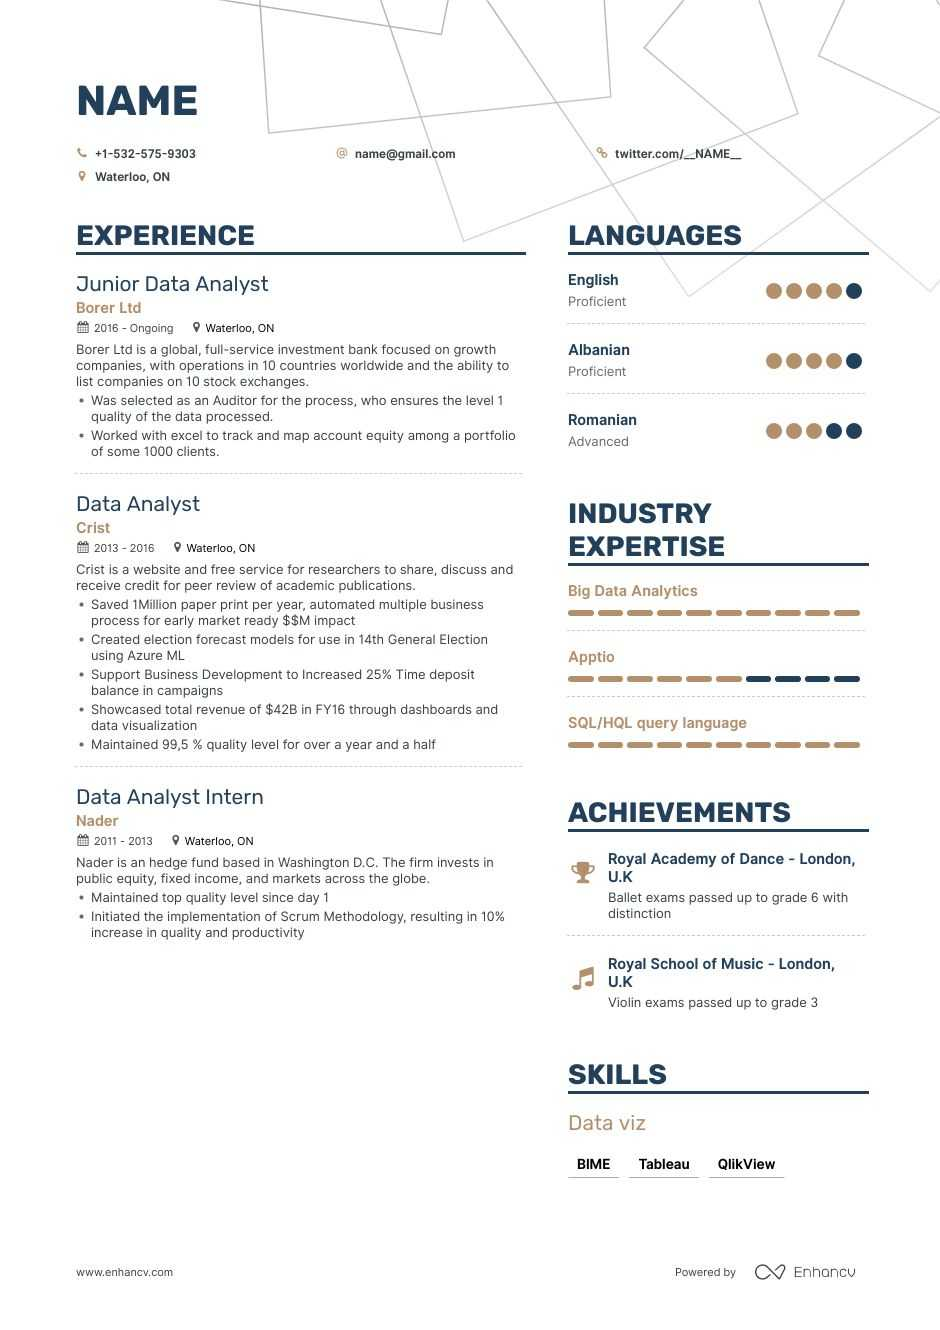 security analyst resume examples skills templates more for soc sample cabinet maker tips Resume Soc Analyst Resume Sample